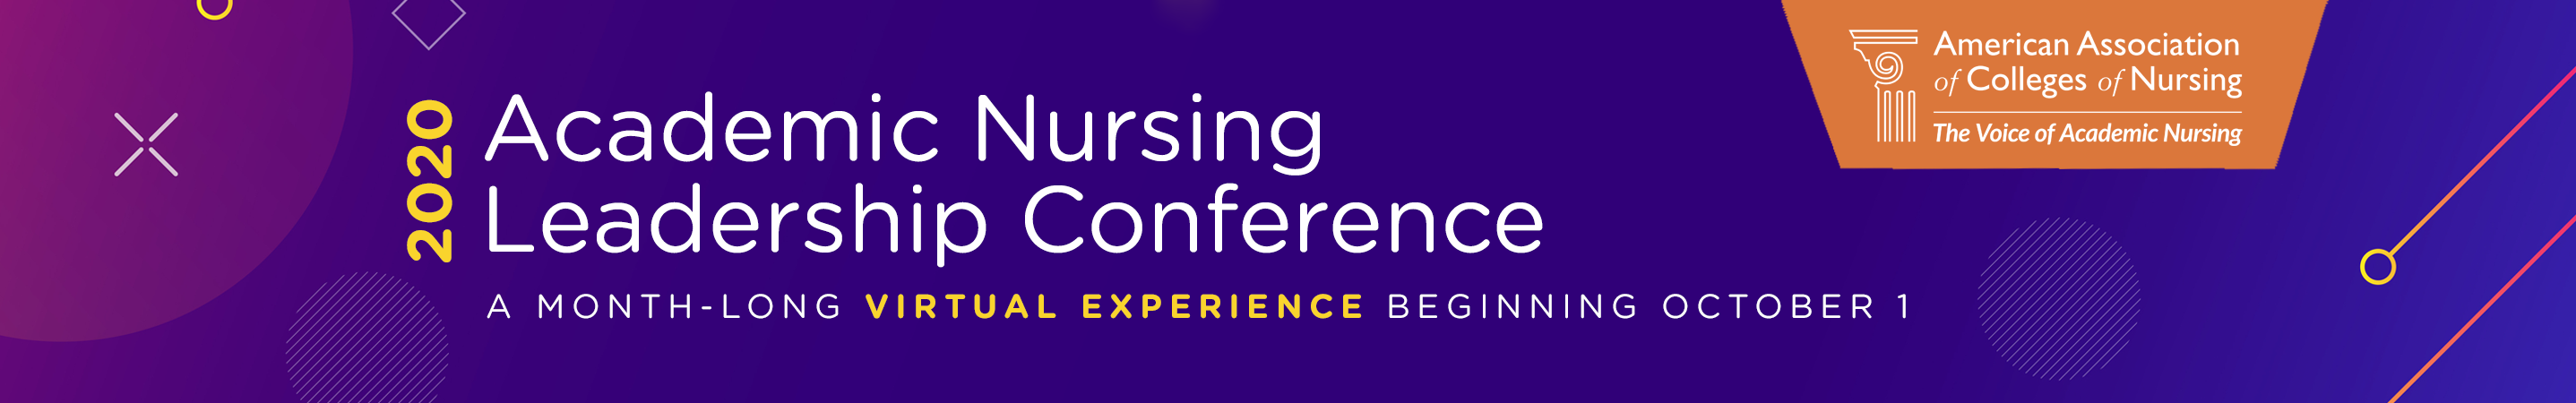 American Association of Colleges of Nursing: The Voice of Academic Nursing